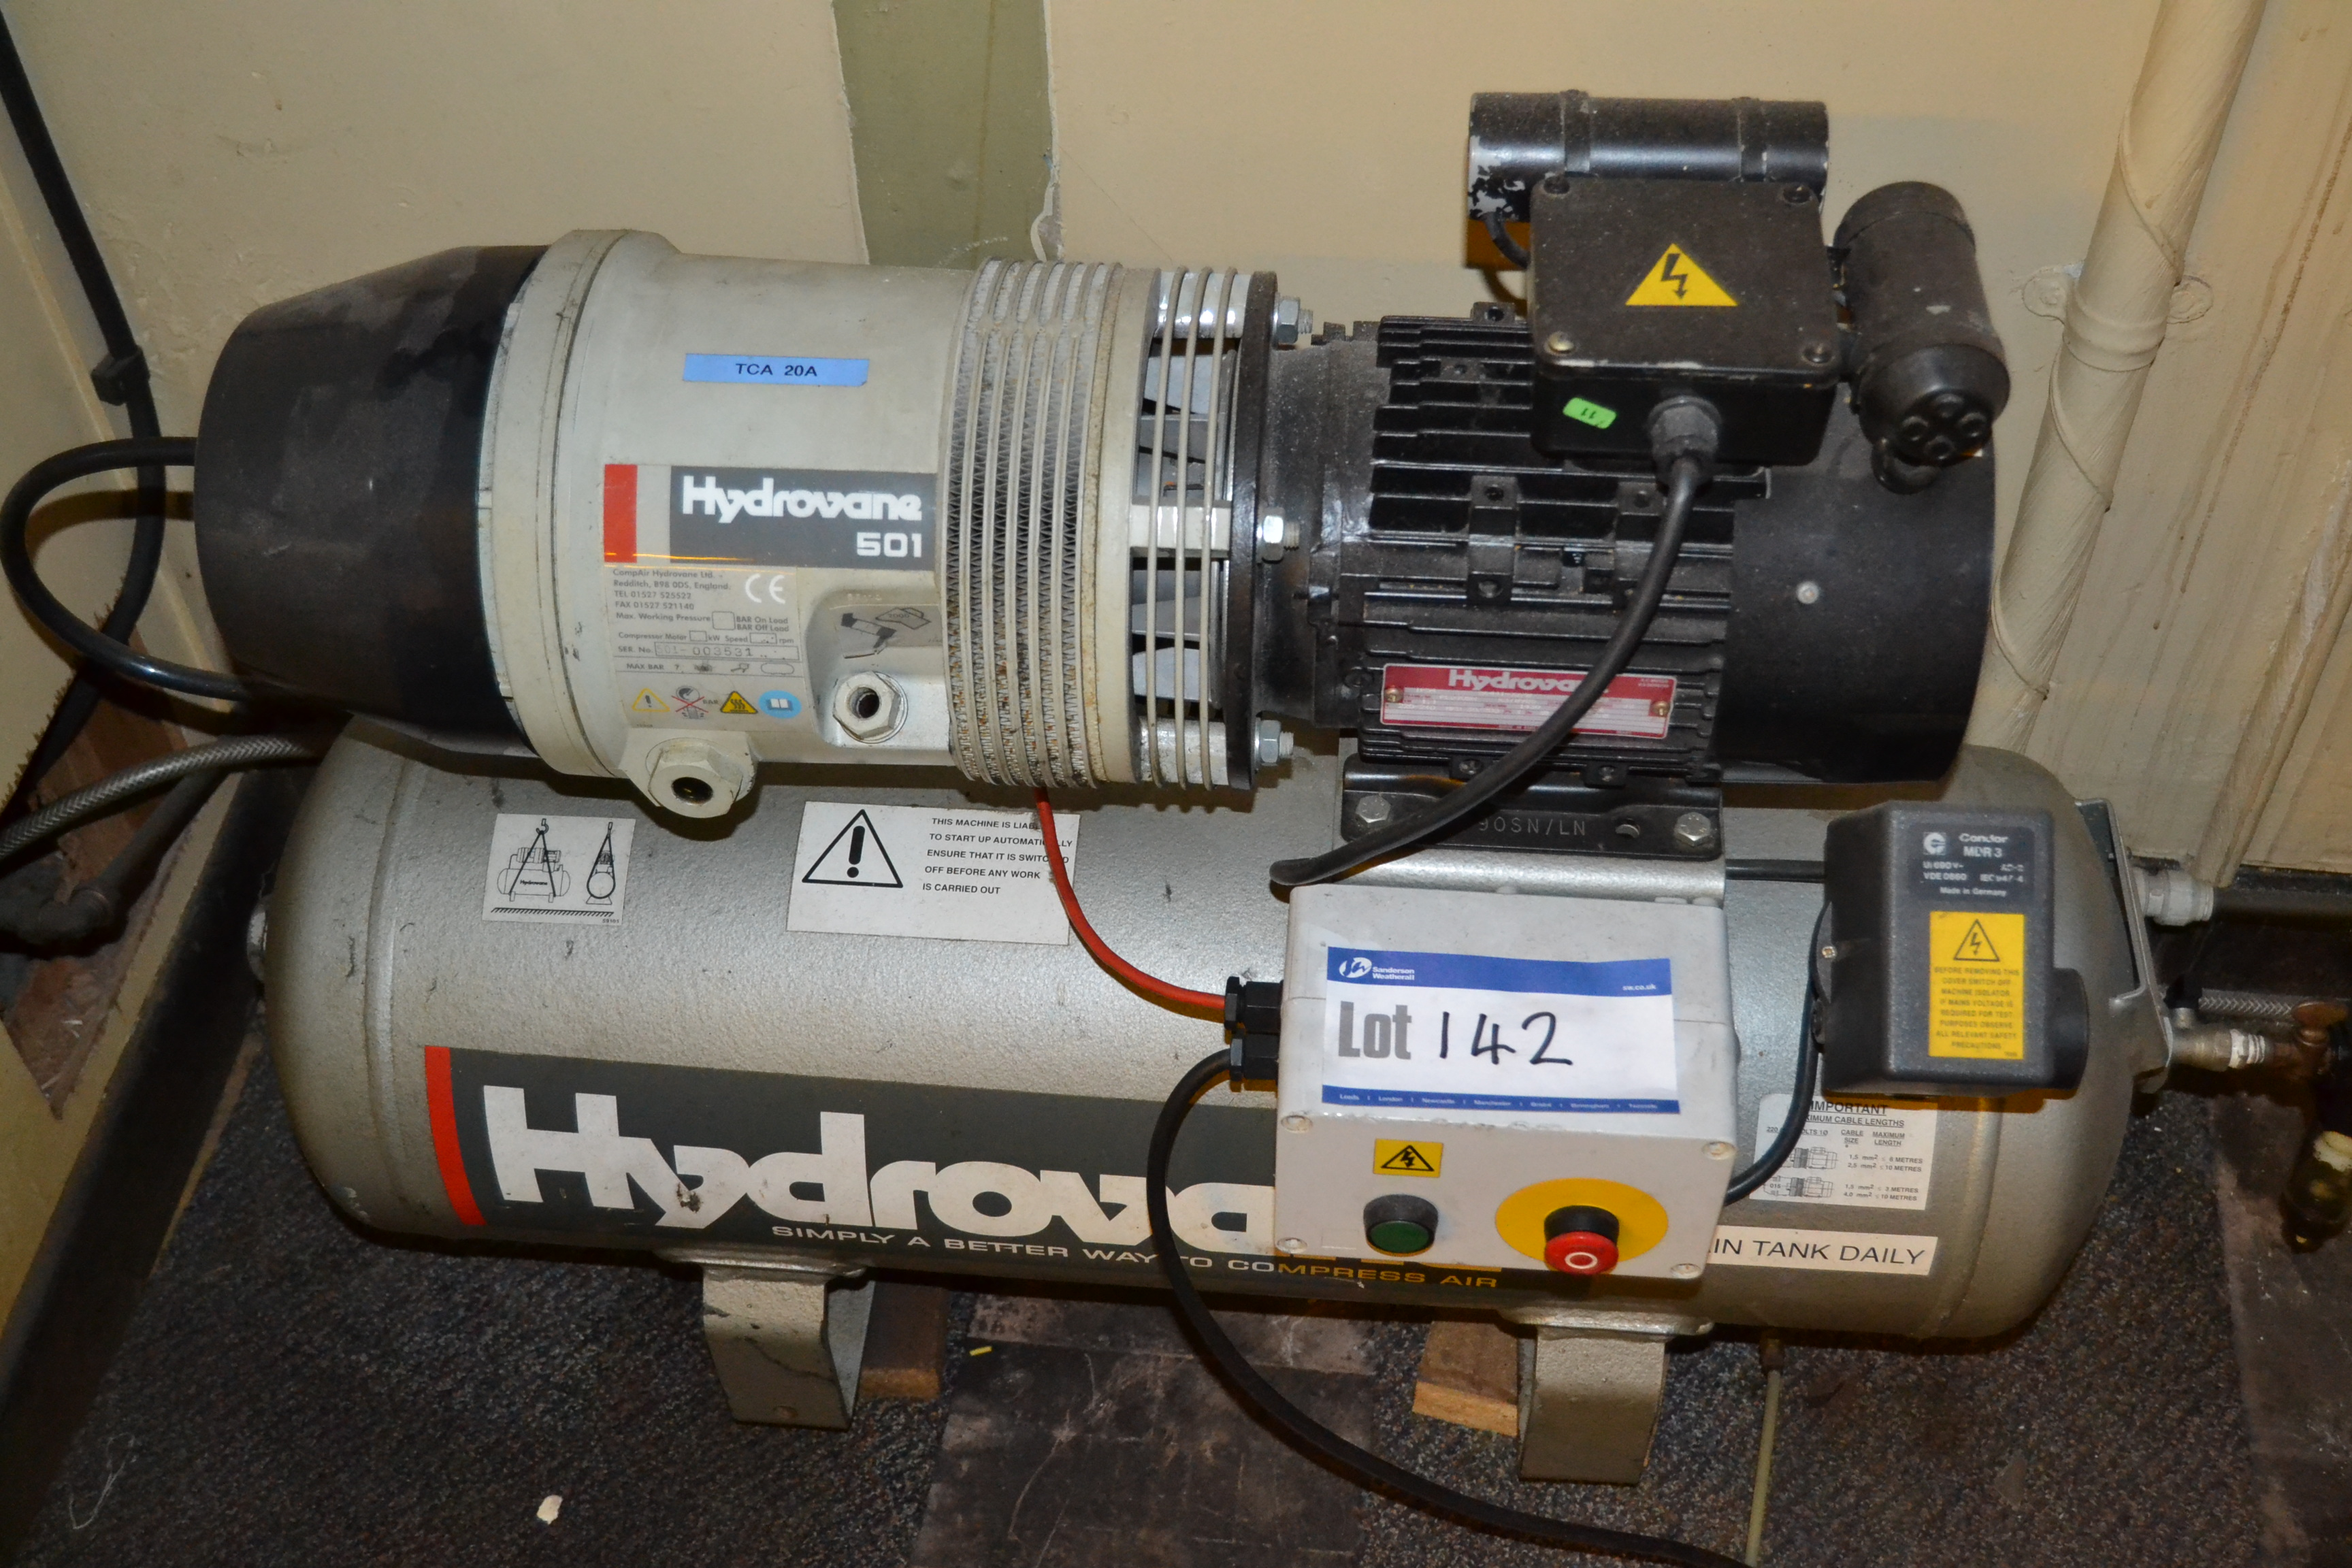 Lot 142 - Hydrovane 501 Receiver Mounted Air Compressor, ser